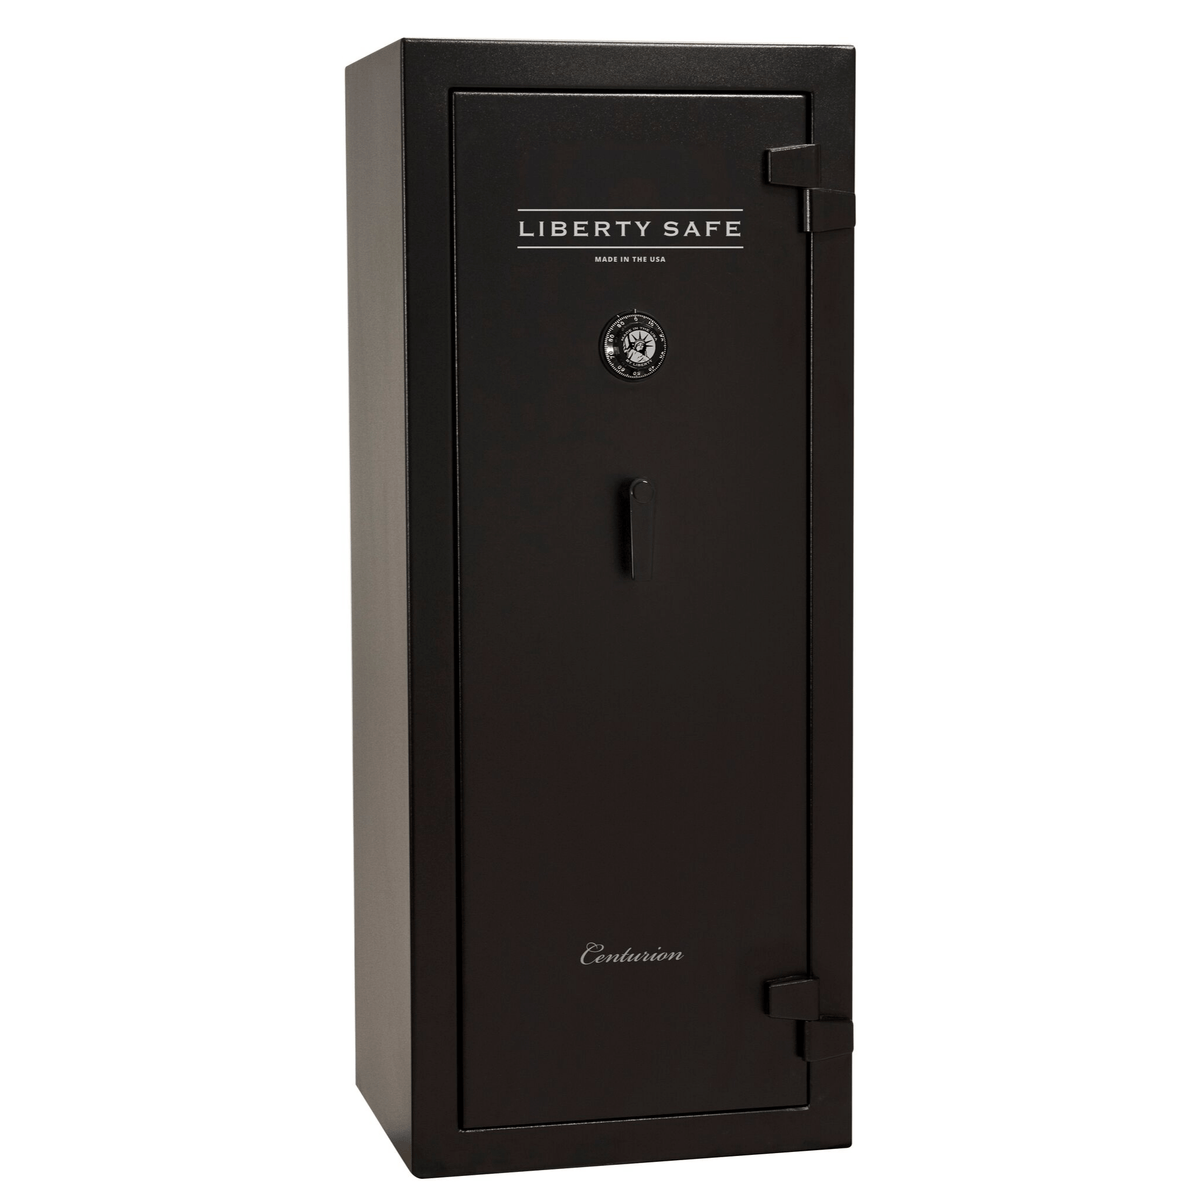 "Centurion Series | Level 1 Security | 30 Minute Fire Protection | 24 DLX | Dimensions: 59.5""(H) X 28.25""(W) X 22""(D) 